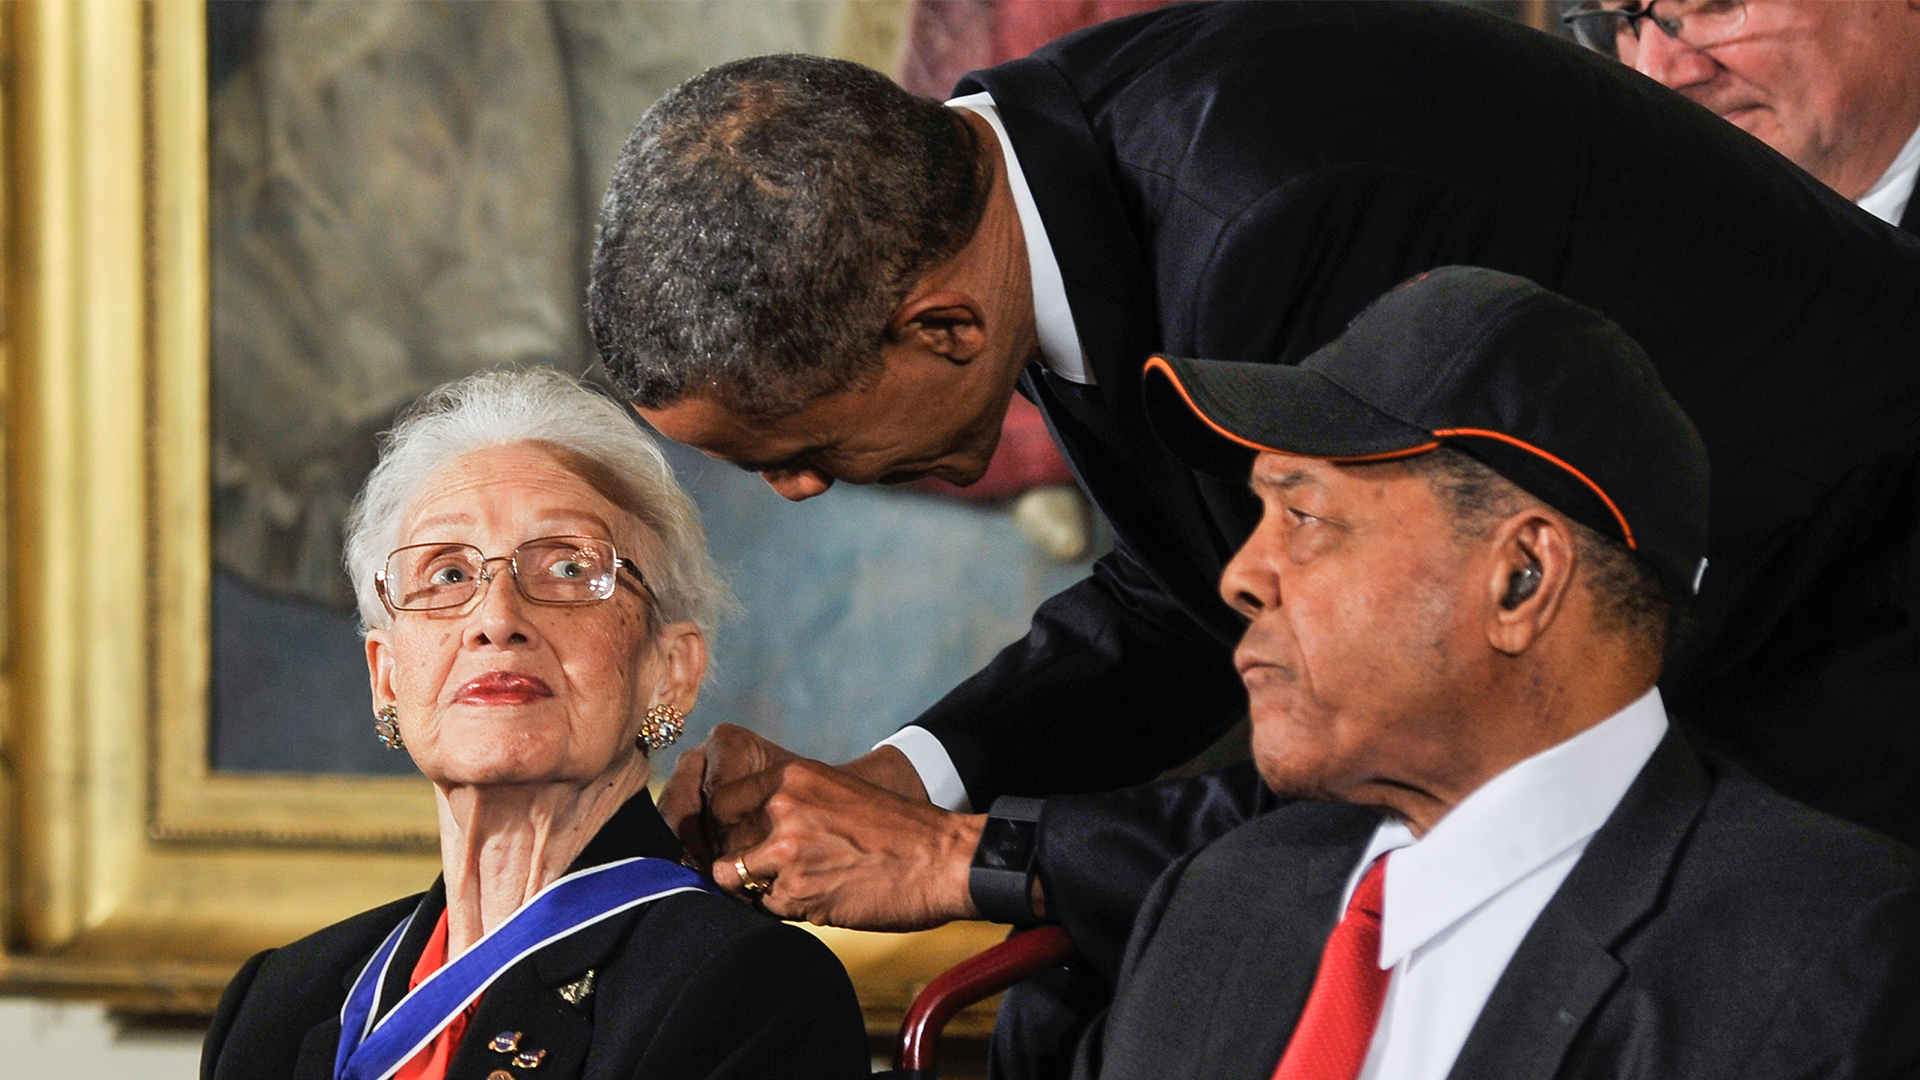 Johnson was awarded the Medal of Freedom, the nation's highest civilian honor, by President Barack Obama.